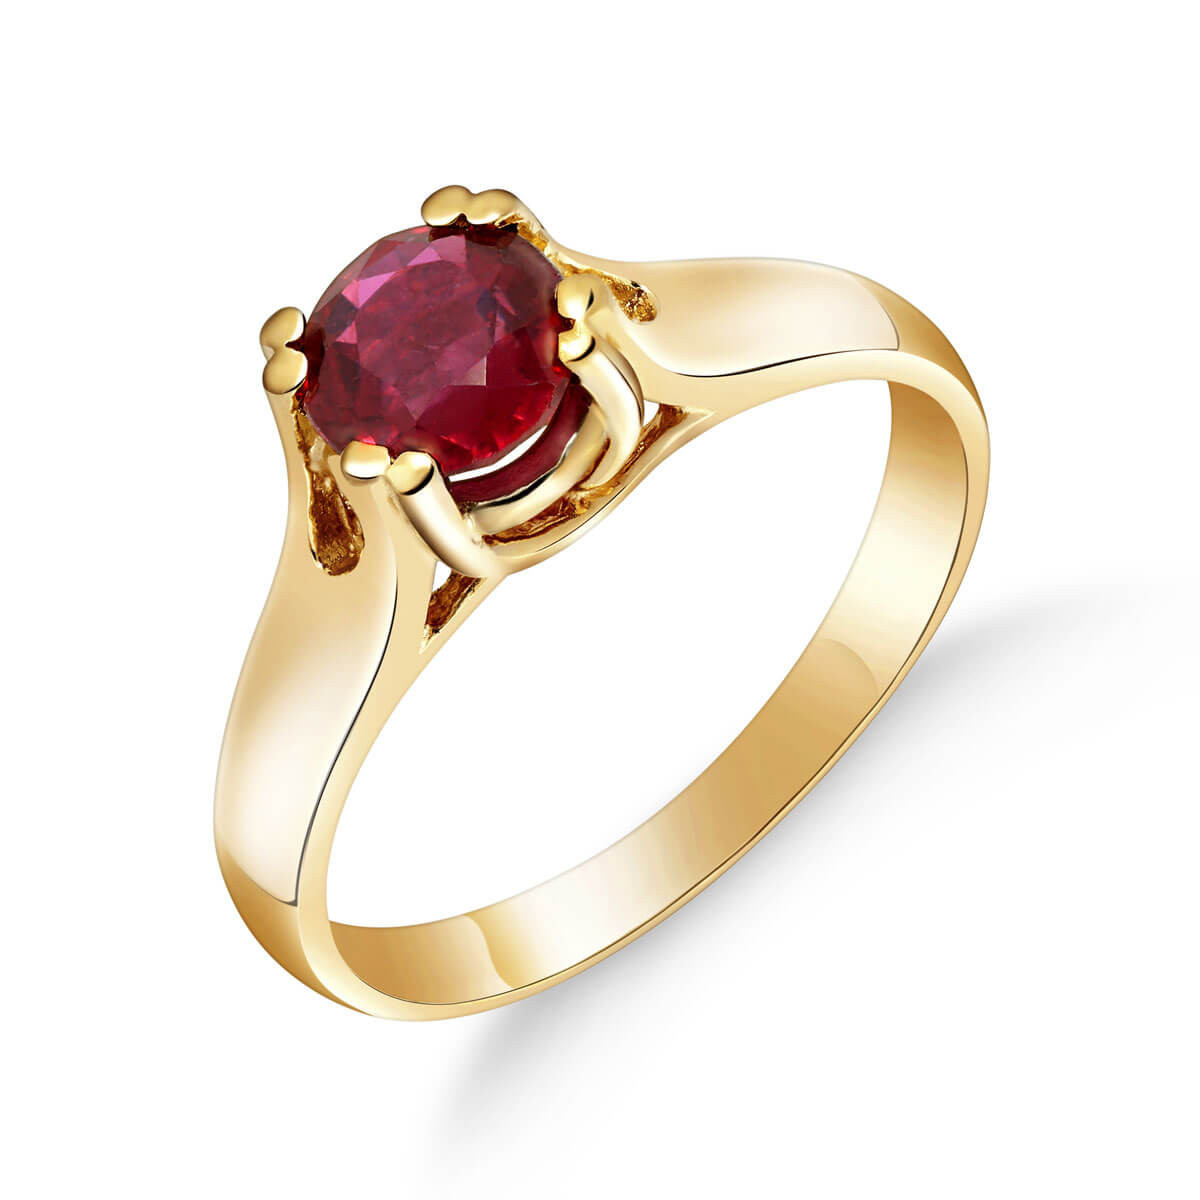 Ruby Solitaire Ring 1.35 ct in 9ct Gold